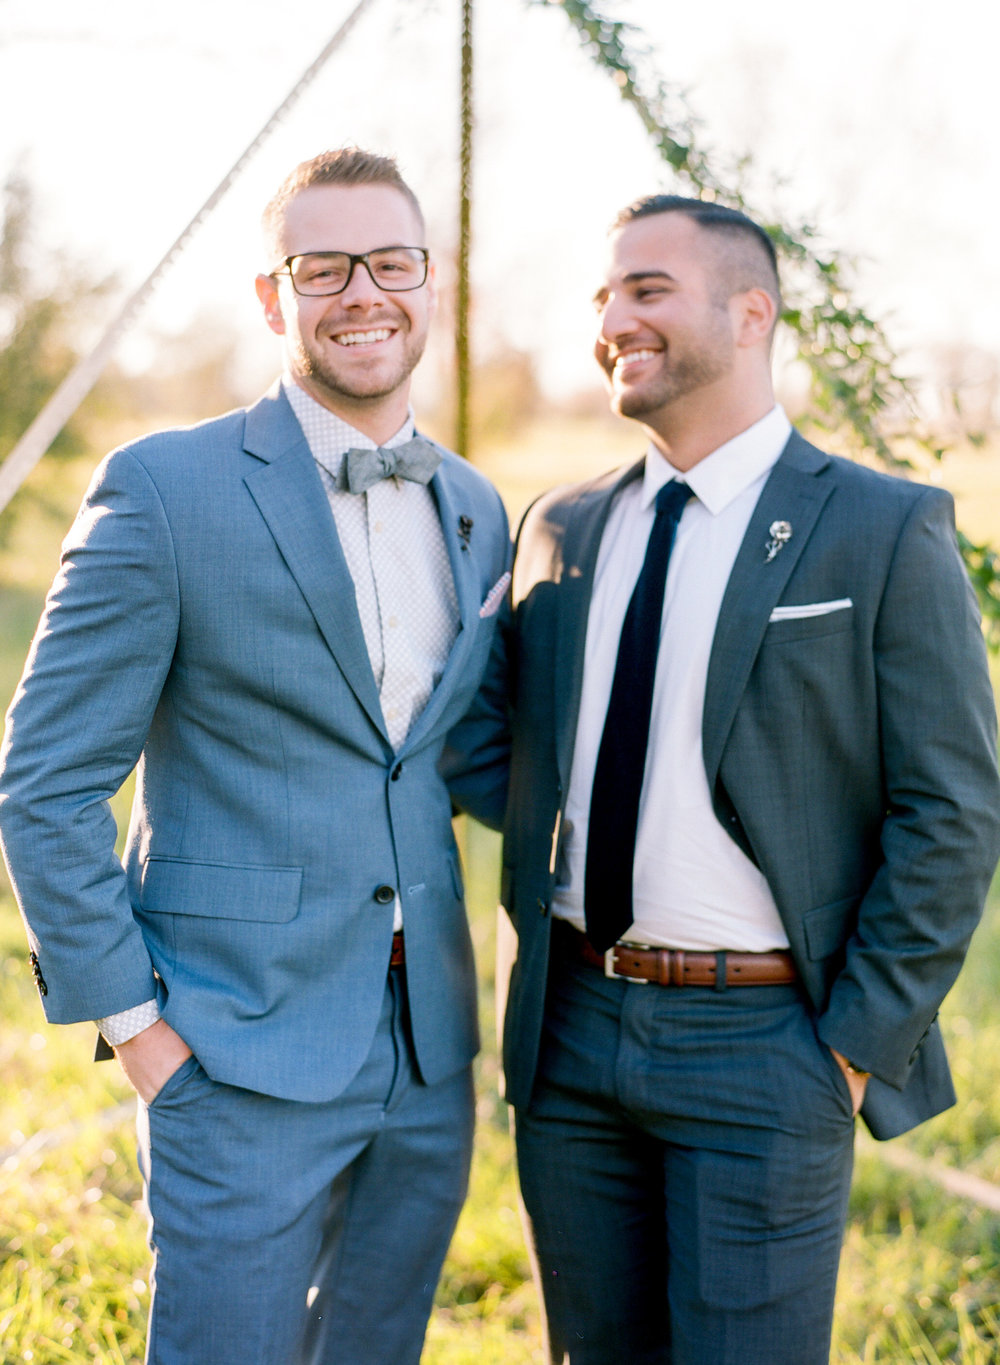 Houston-Texas-Same-Sex-LGBT-Wedding-Photographer-Burnett's-Board-Feature-Dana-Fernandez-Photography-Love-Wins-Film-20.jpg